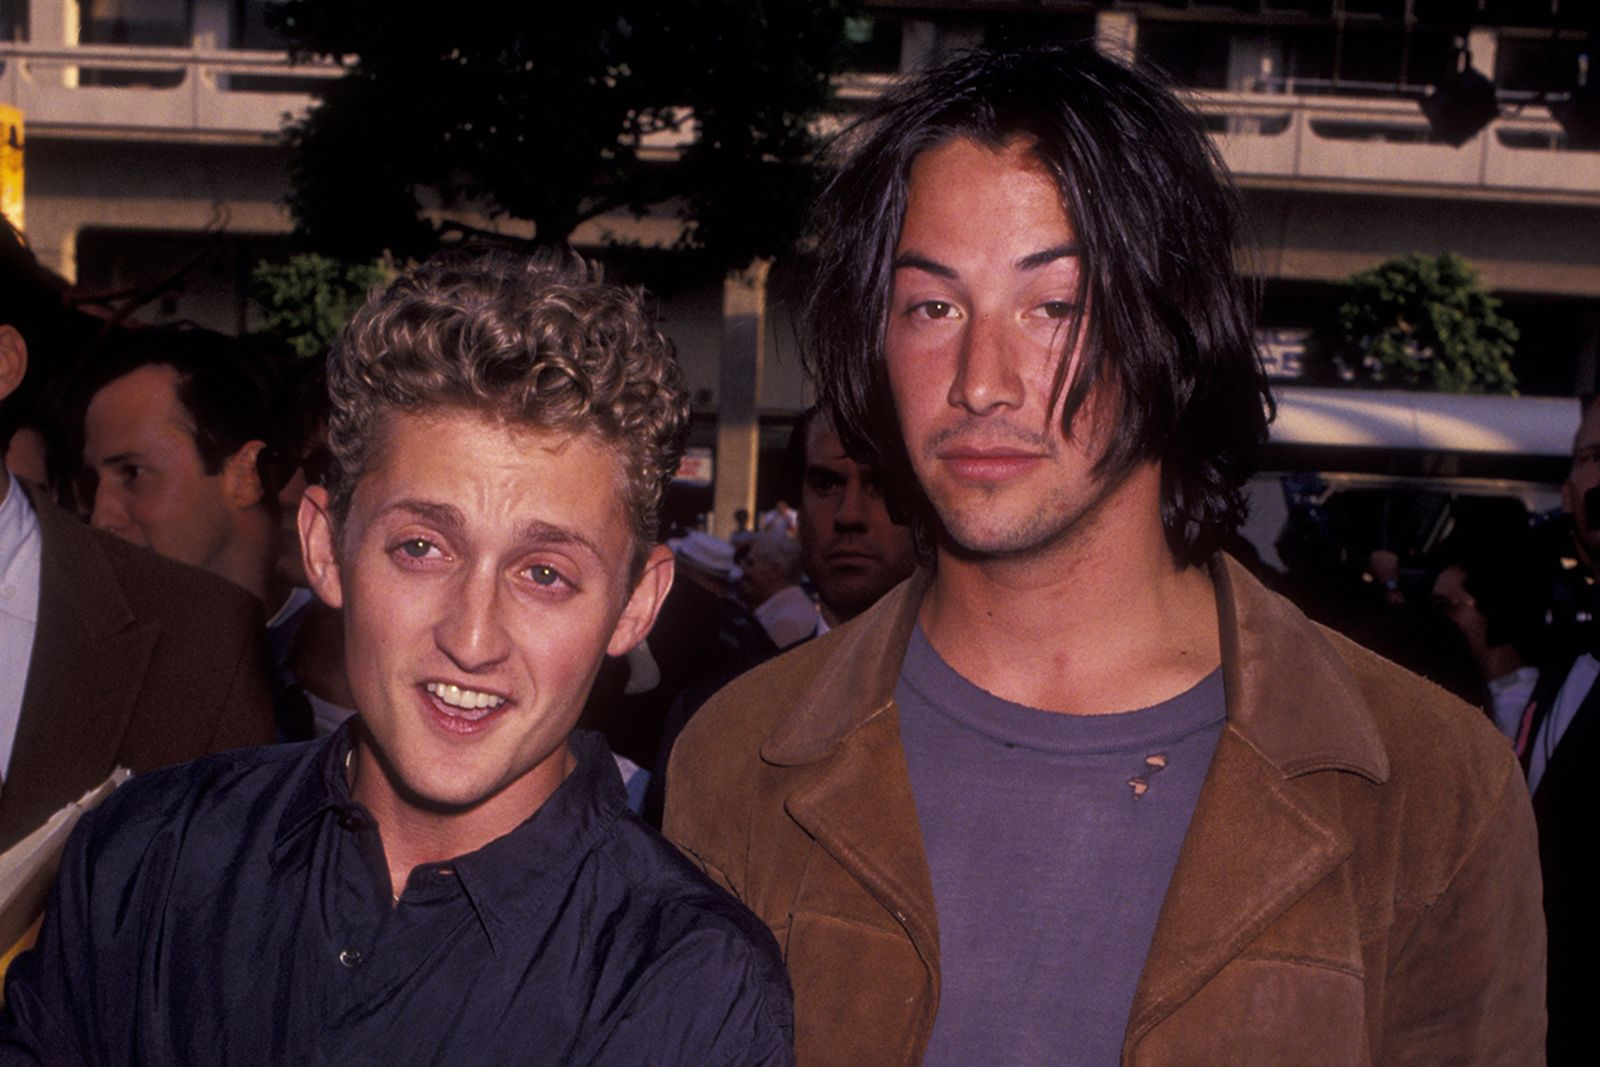 Alex Winter and Keannu Reeves